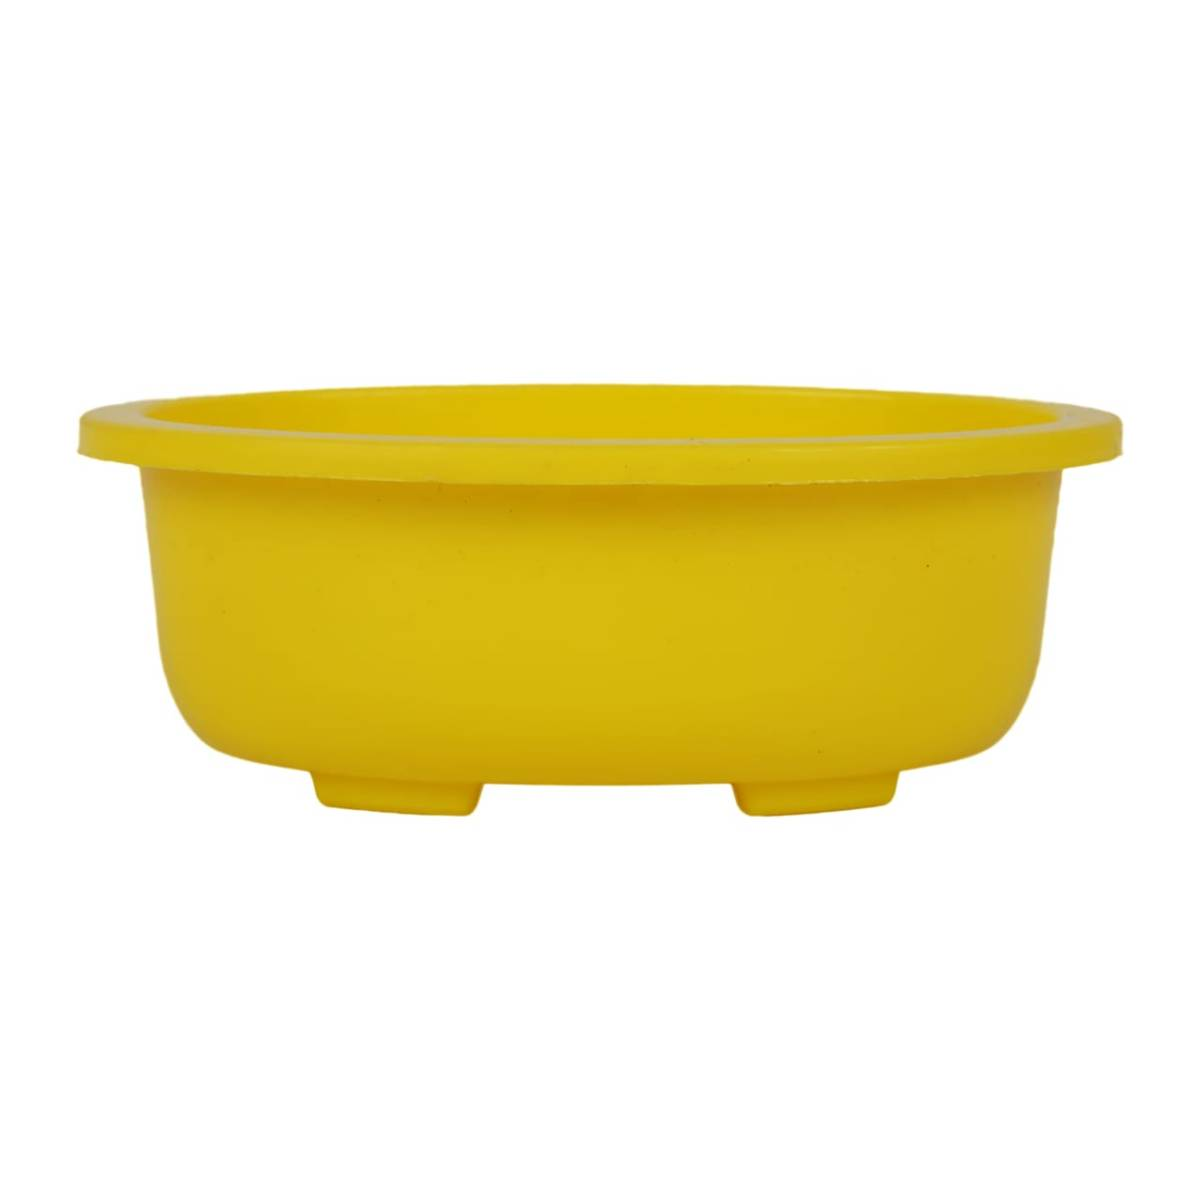 "Bonsai oval 5.5"" plastic flower pot online"